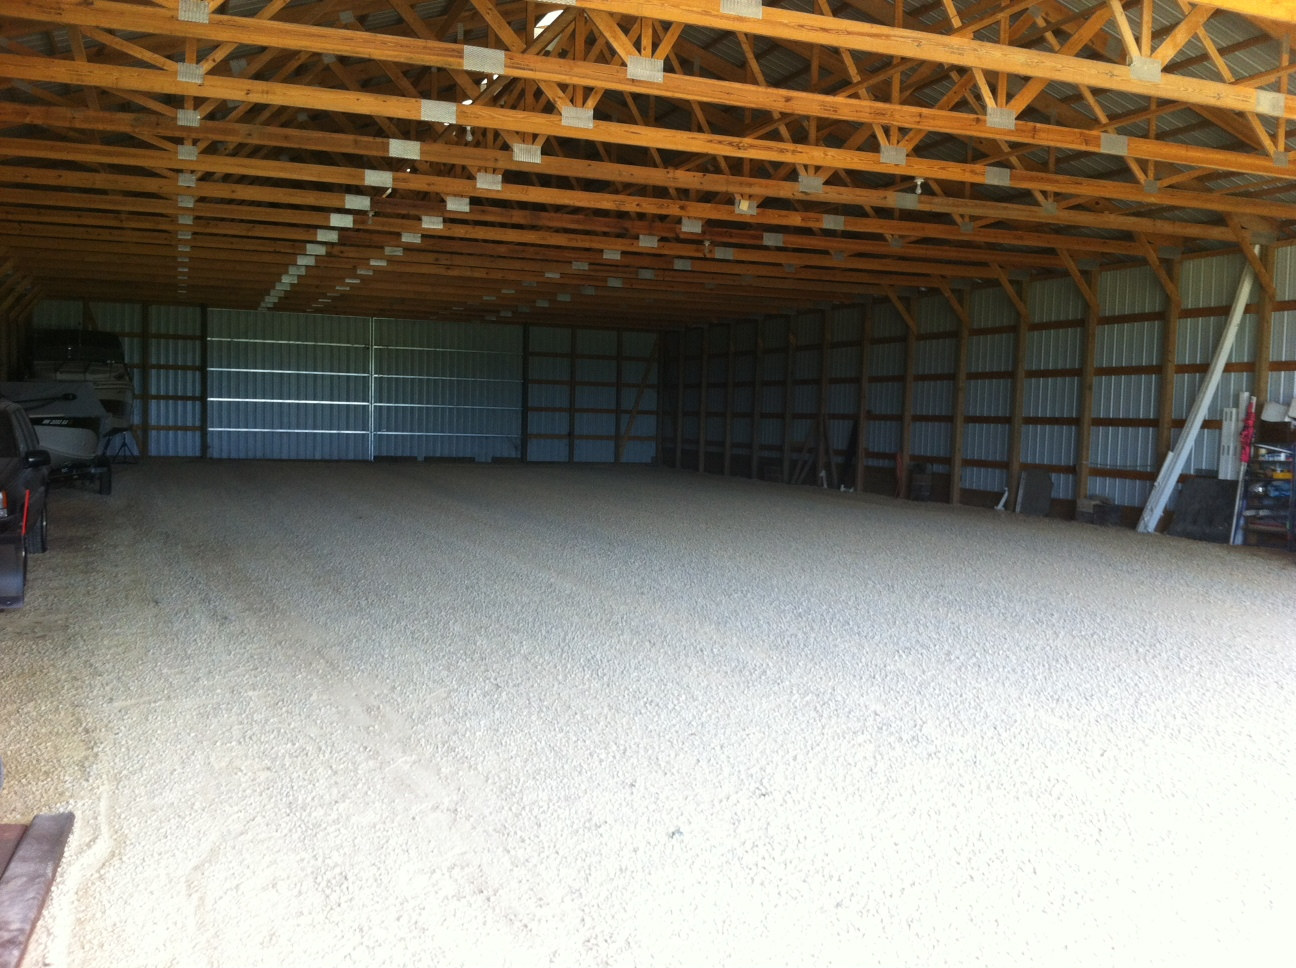 Our experienced drivers can transport your boat to our inside storage facility located in Hastings, MN